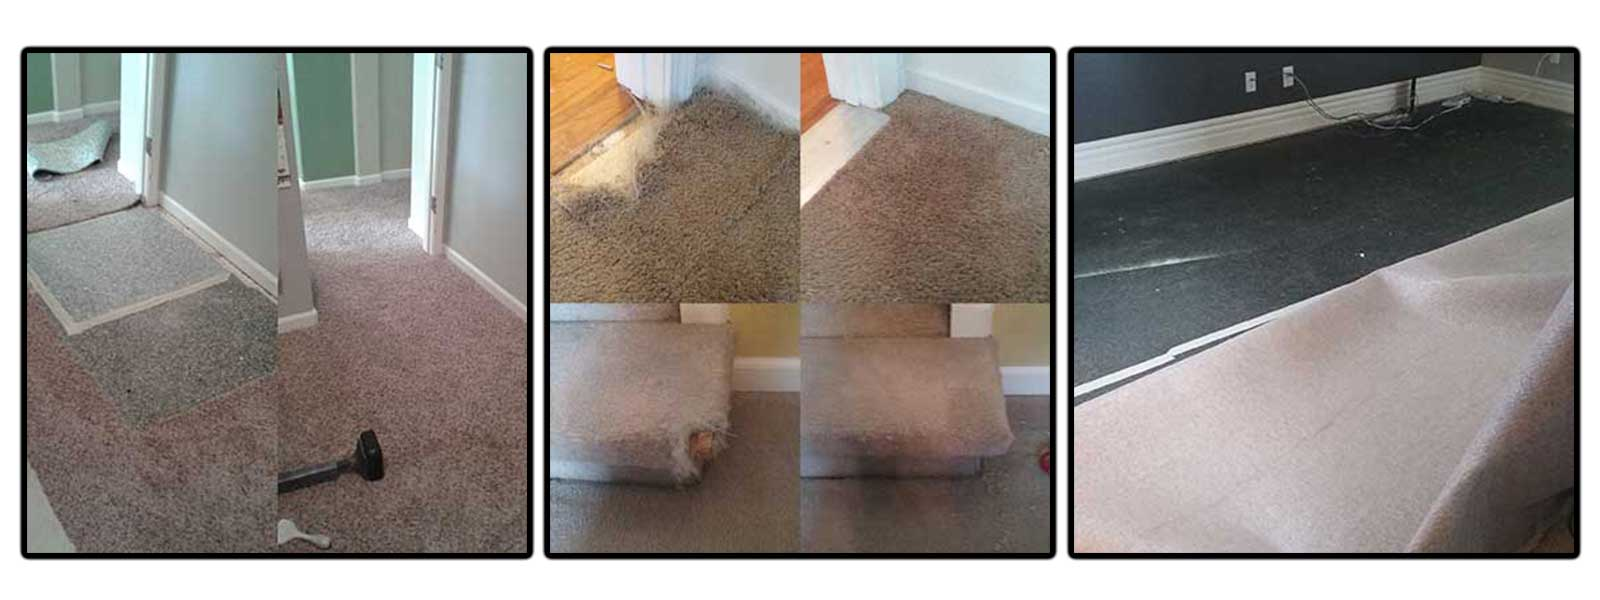 How To Repair Carpet From Cat Scratches